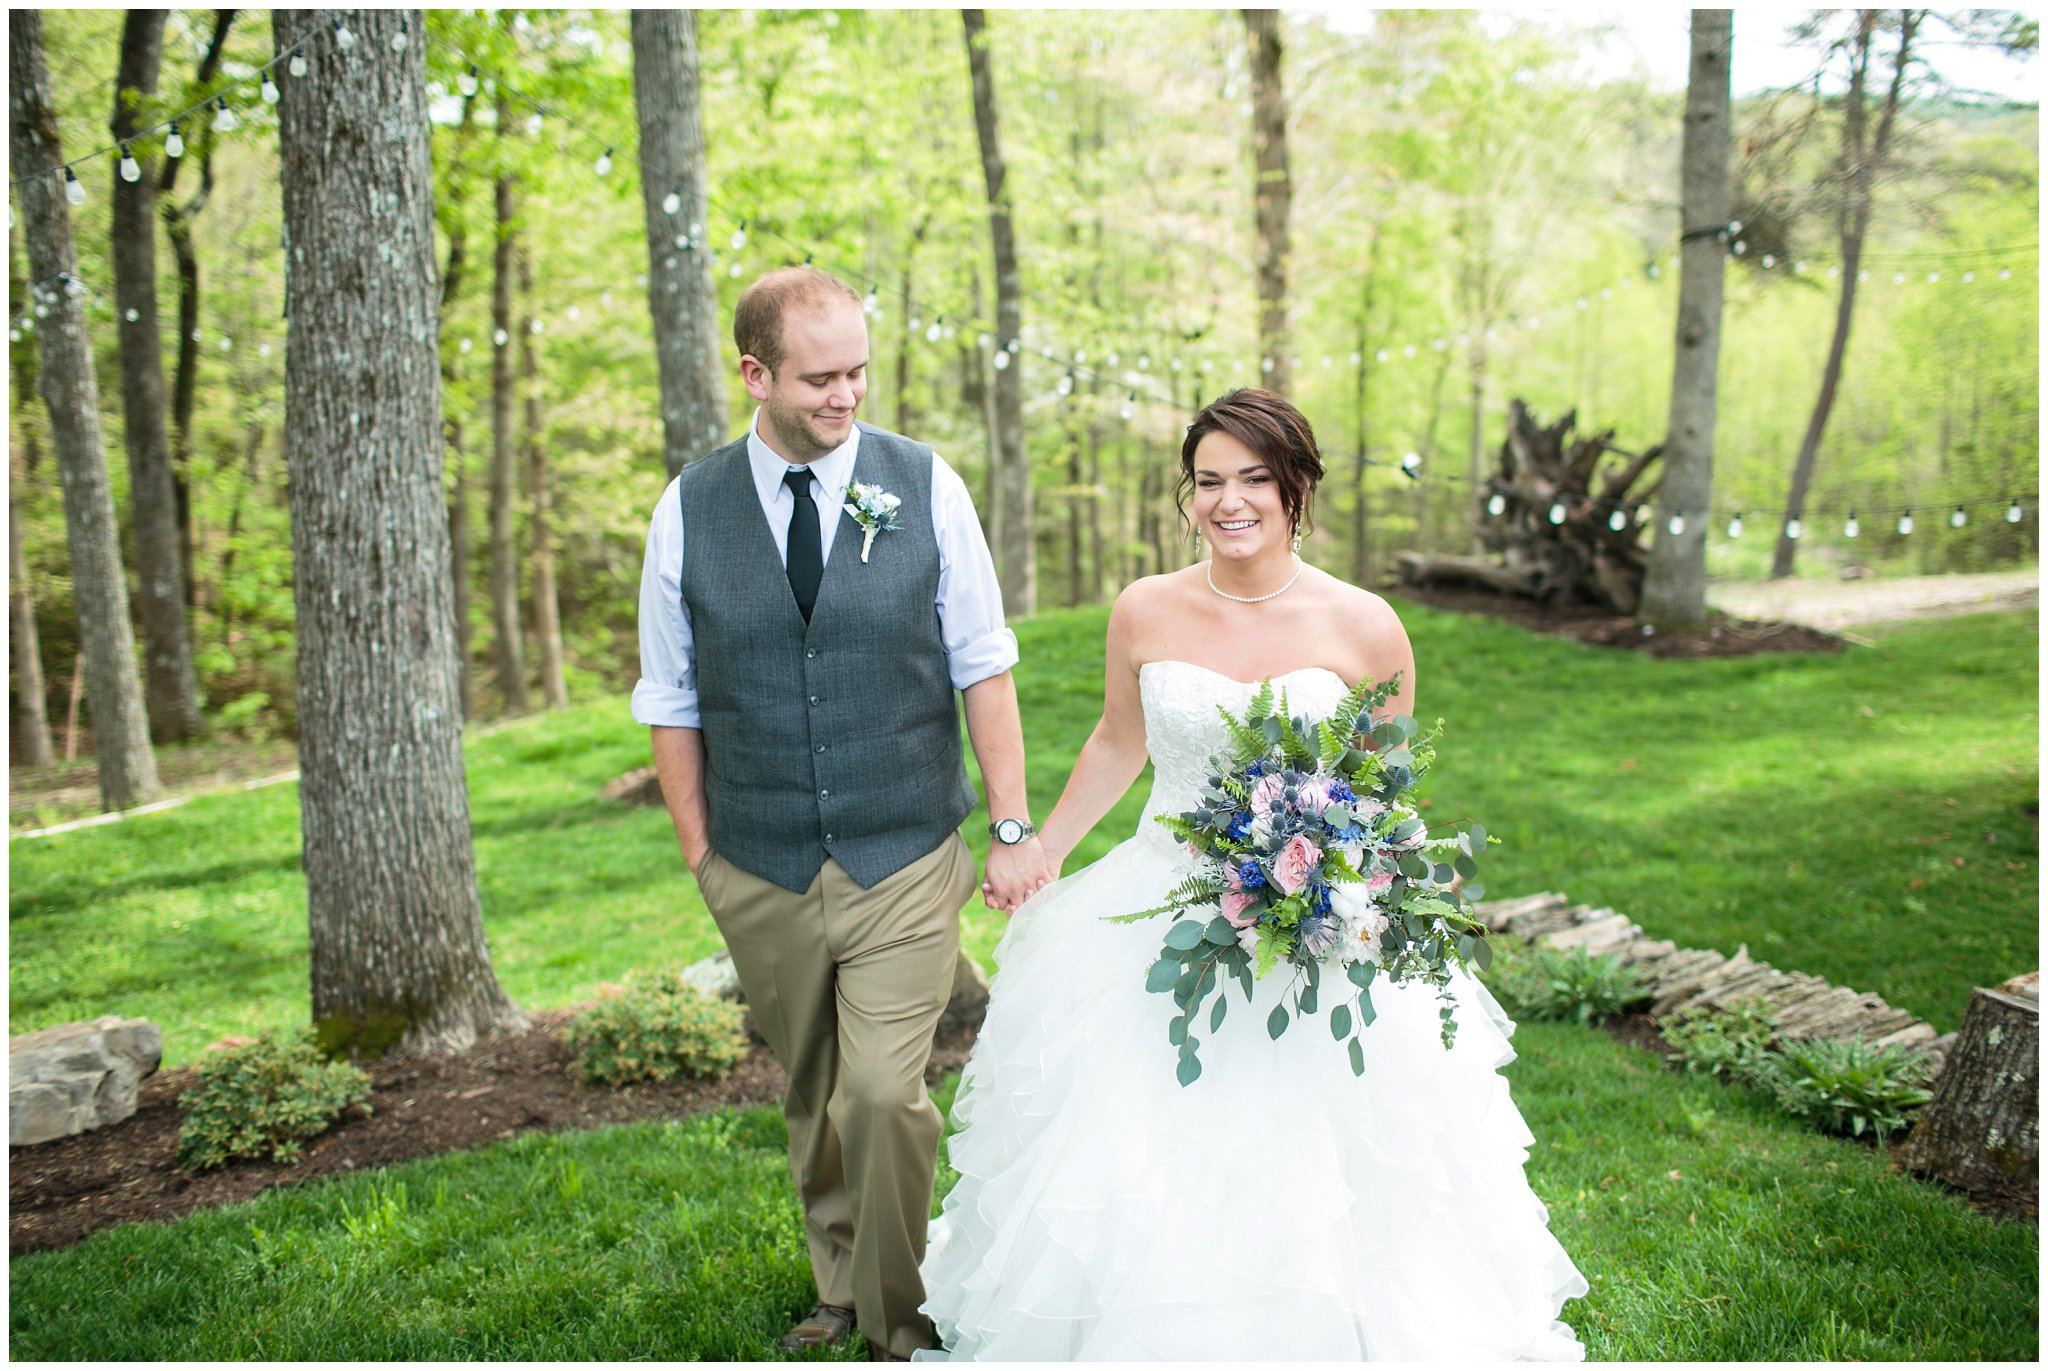 melissa-timm-florist-knoxville-tn-flowers-abby-malone-photos-crescent-bend-florist-affordable_6949.jpg